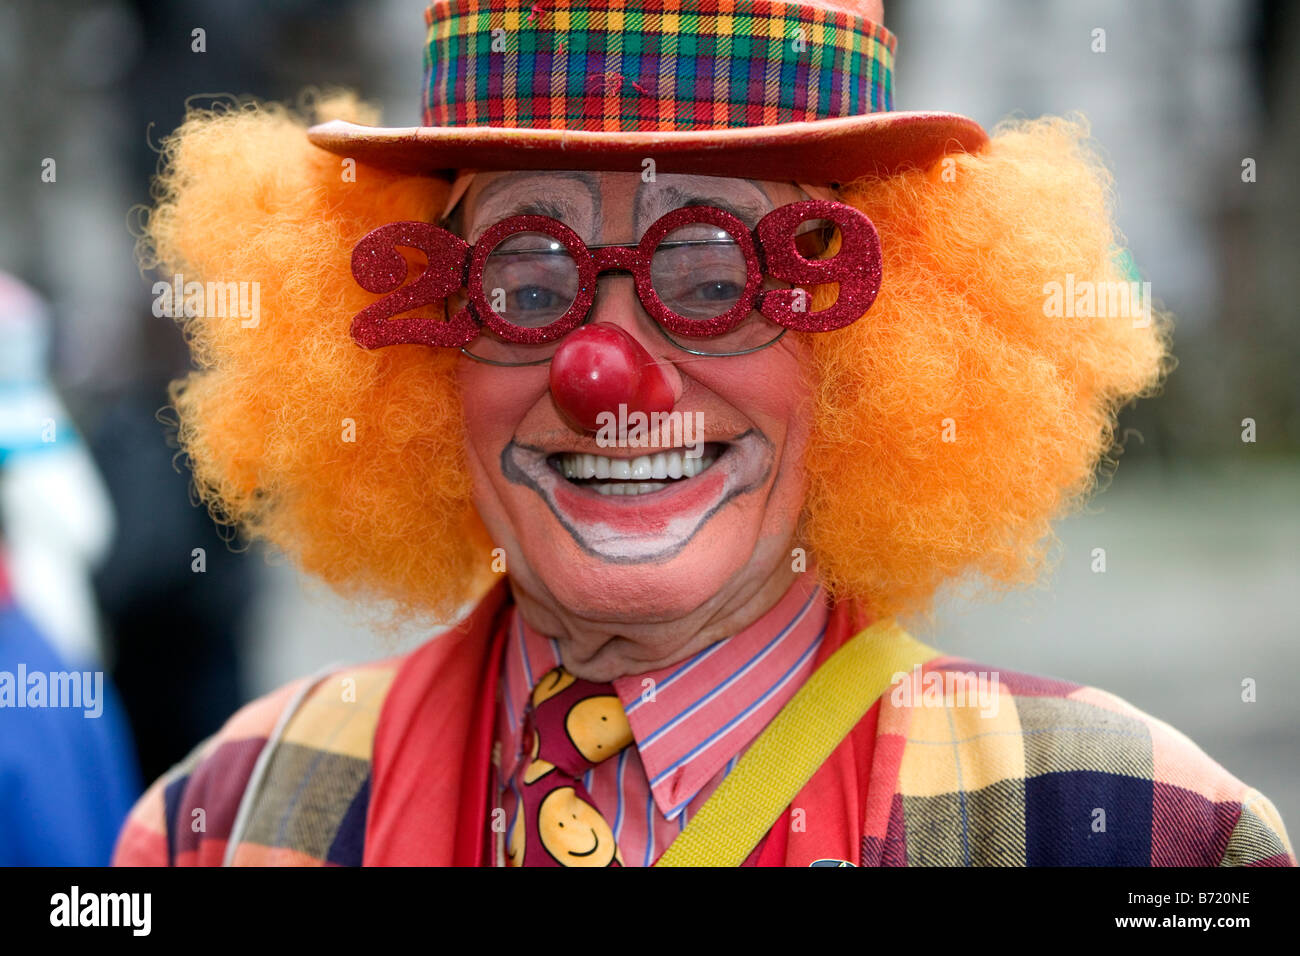 Colourful clown with '2009' glasses at the London Parade, a New Year's Day Parade in Central London - Stock Image